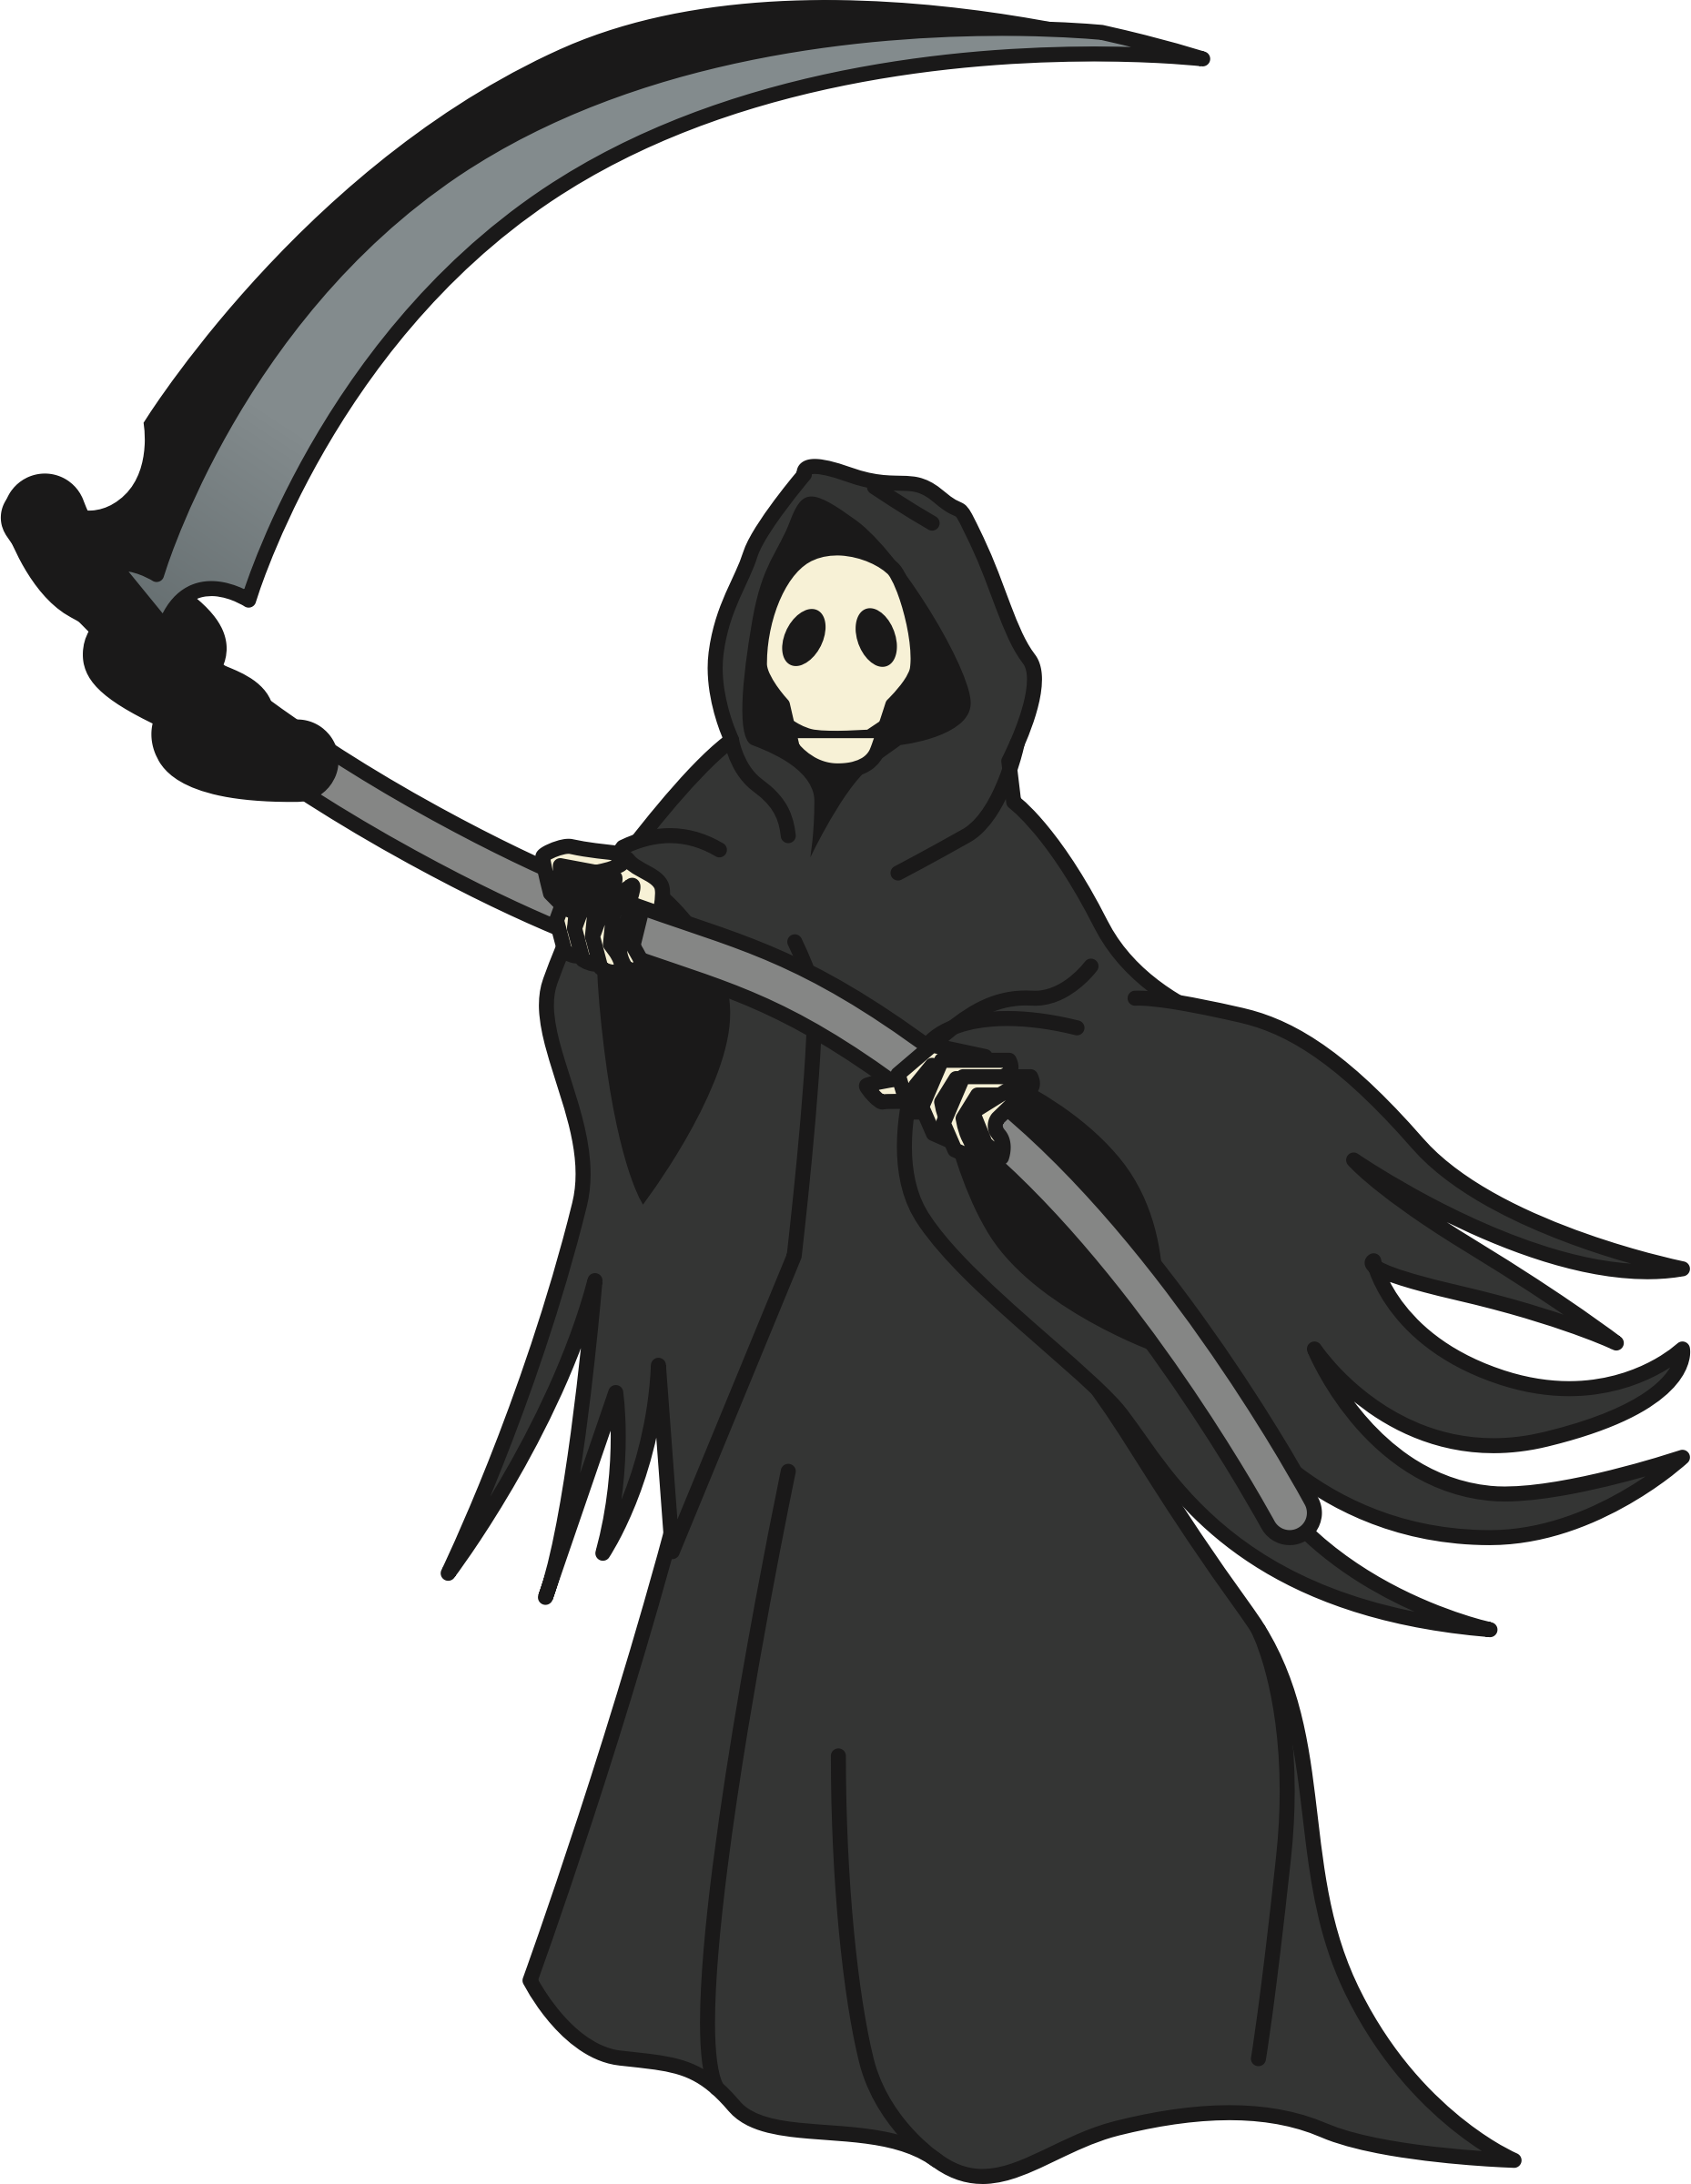 graphic download Grim reaper clipart. Big image png